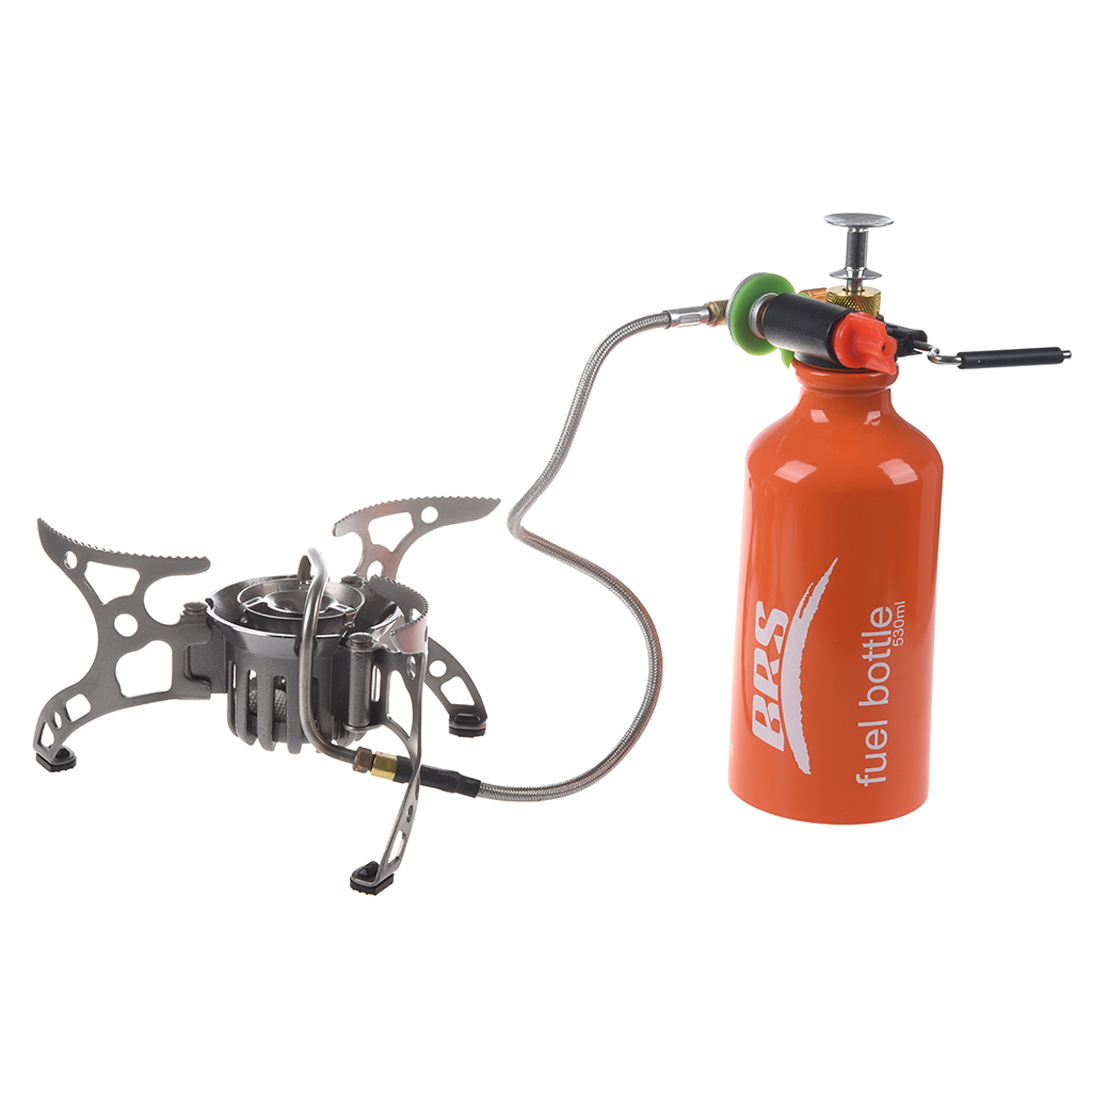 Outdoor Camping Multi-fuel Stove Backpacking Cookware Cooking Picnic Stove Oil Gas Furnace for camping,hiking ...